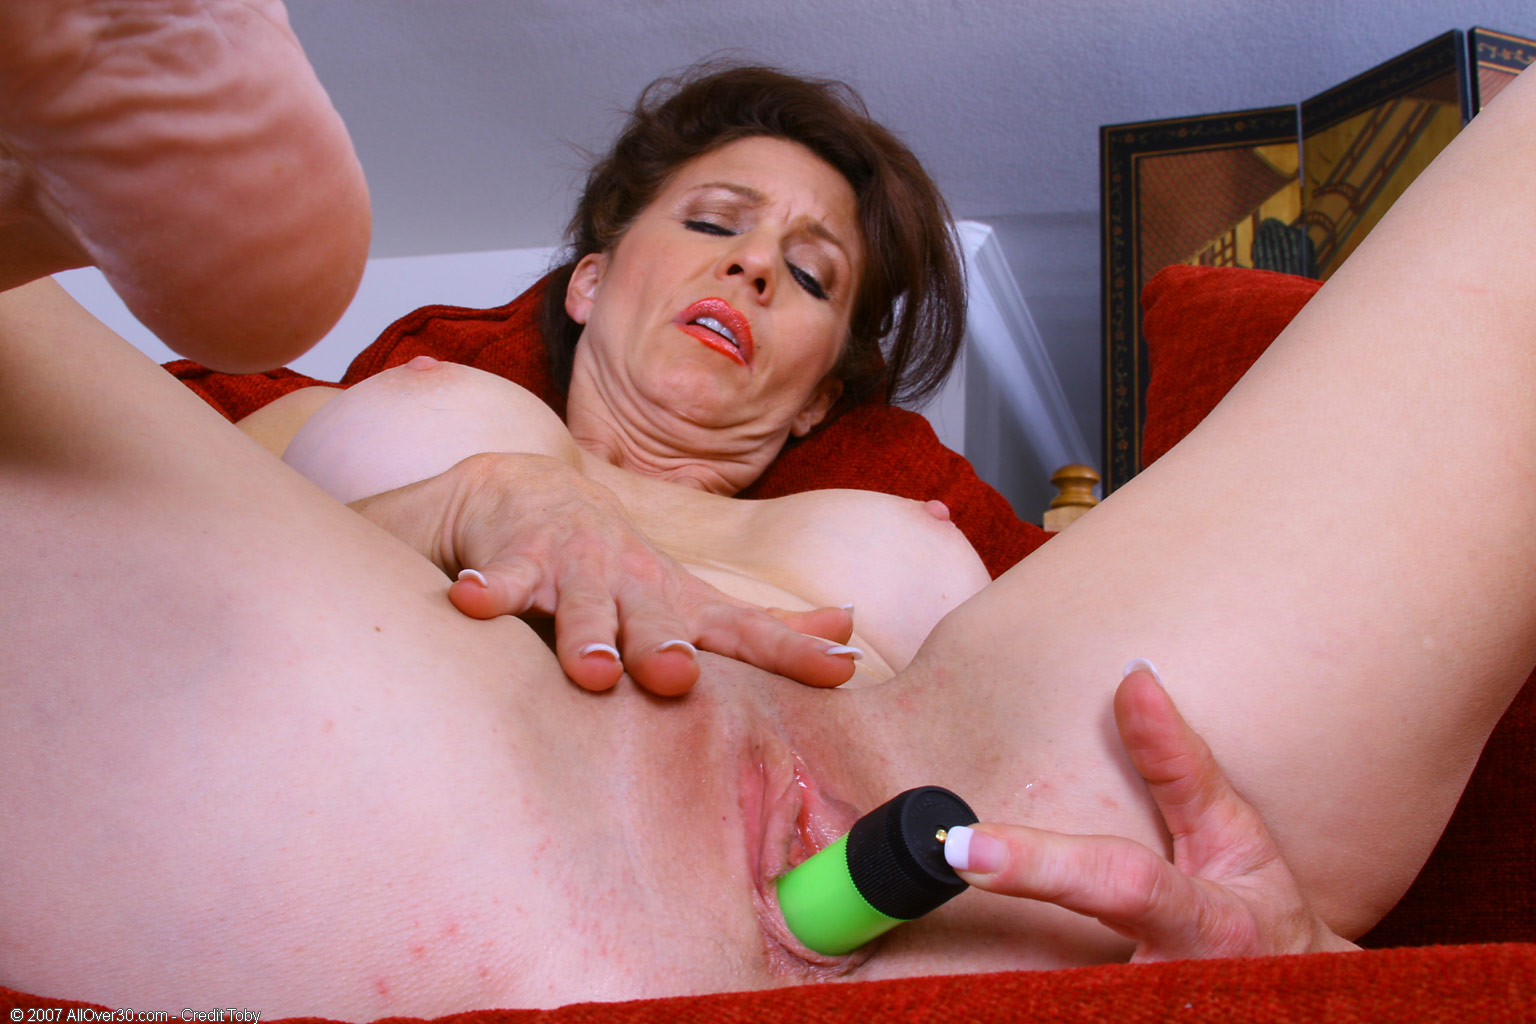 Artemesia is all about dominating and stripping 1